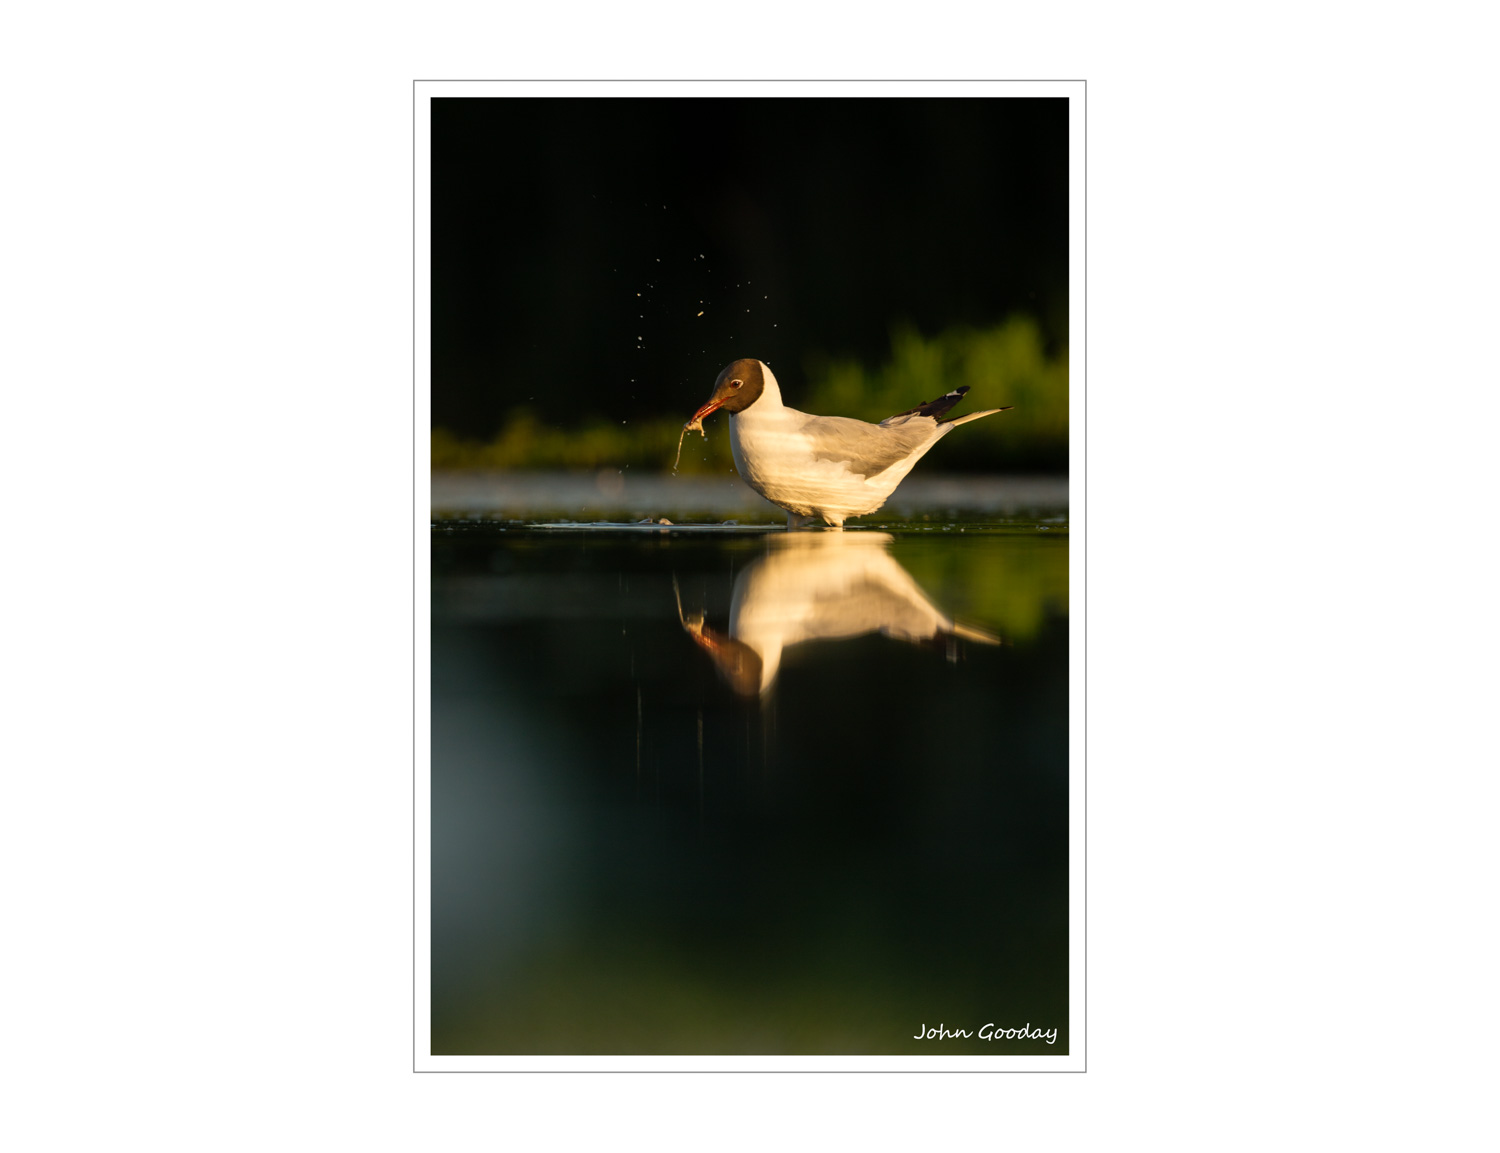 (Image: Black-headed Gull fishing. Canon EOS 5D Mark III, EF 500mm f/4L IS II, 1/640 sec @ f/5.6, ISO 400, tripod, hide).